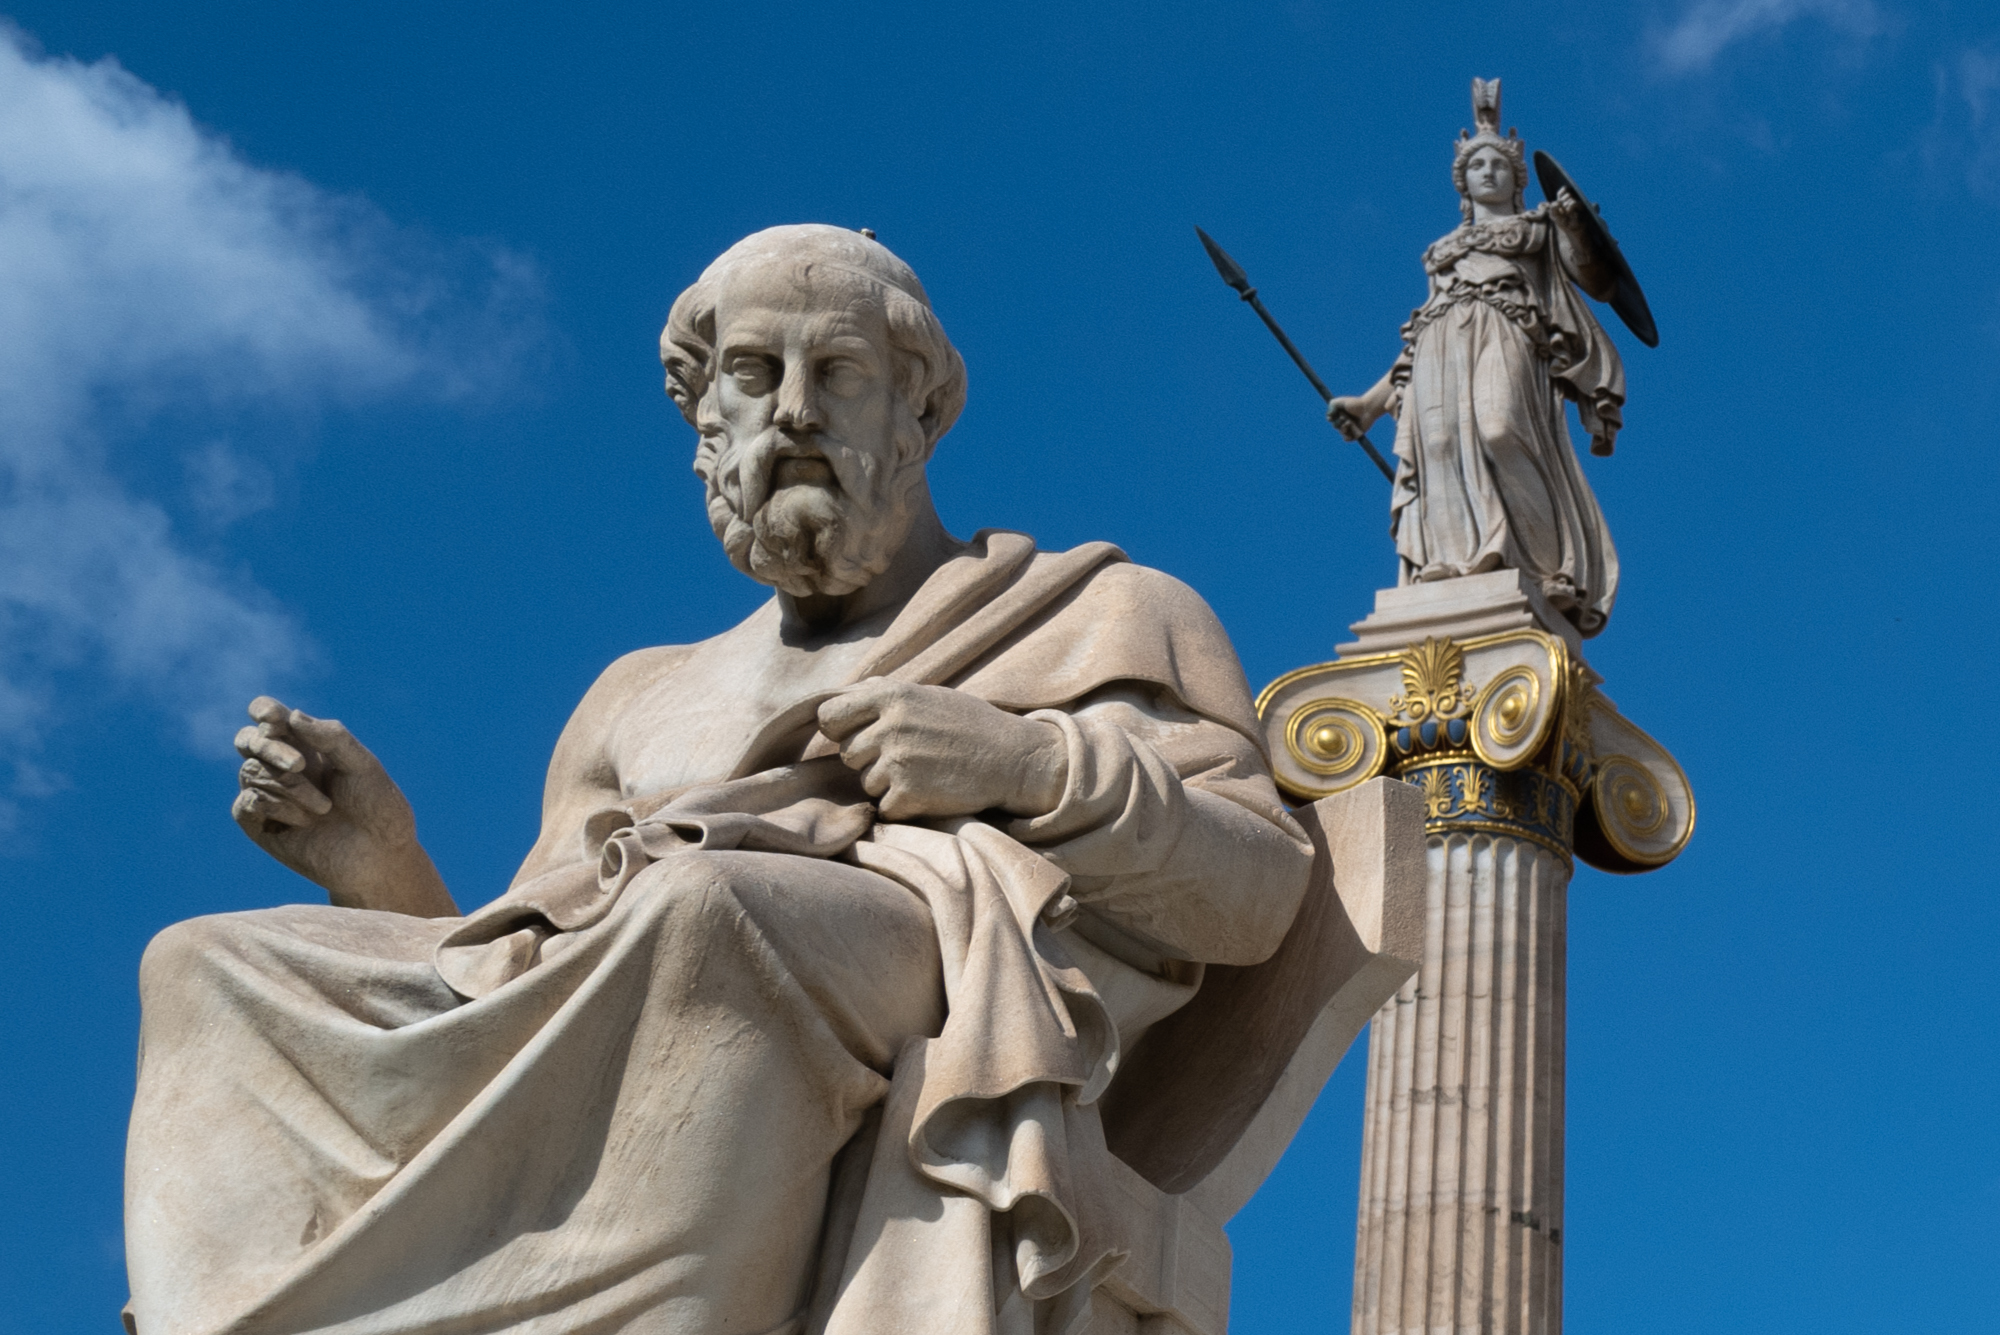 Athena watching over Socrates at The Academy of Athens